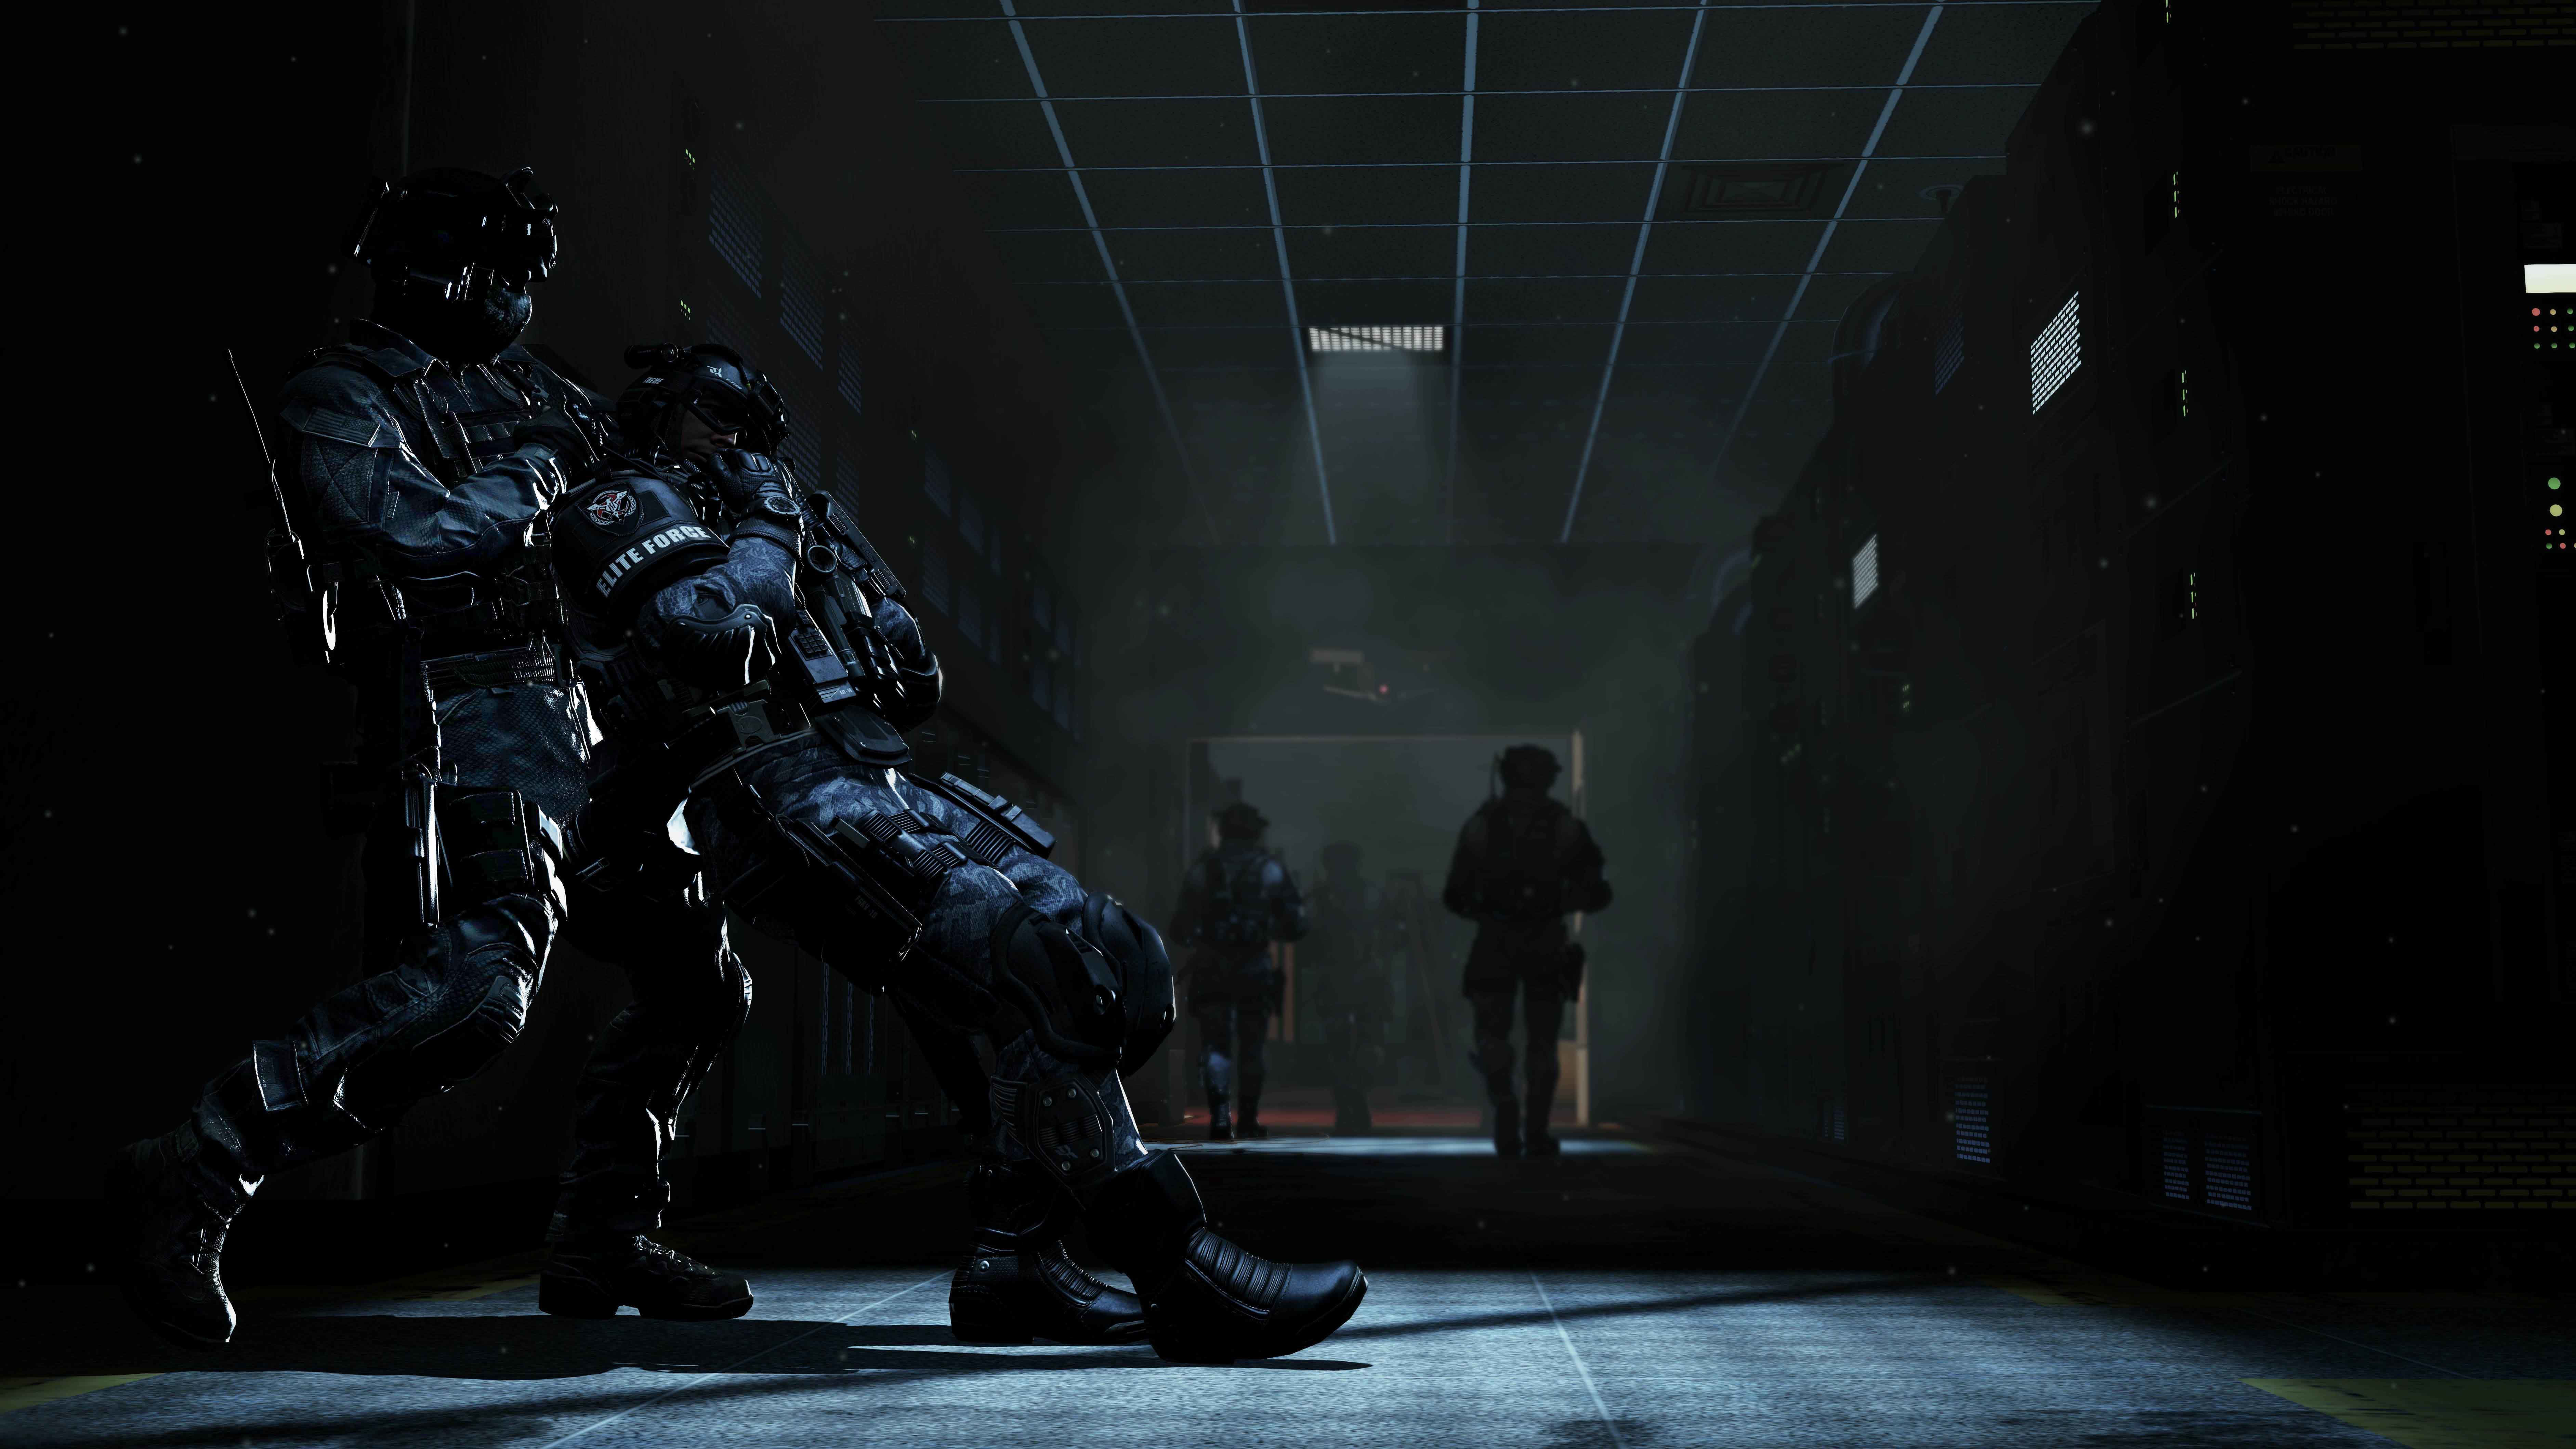 Call of duty ghosts call of duty ghosts voltagebd Choice Image